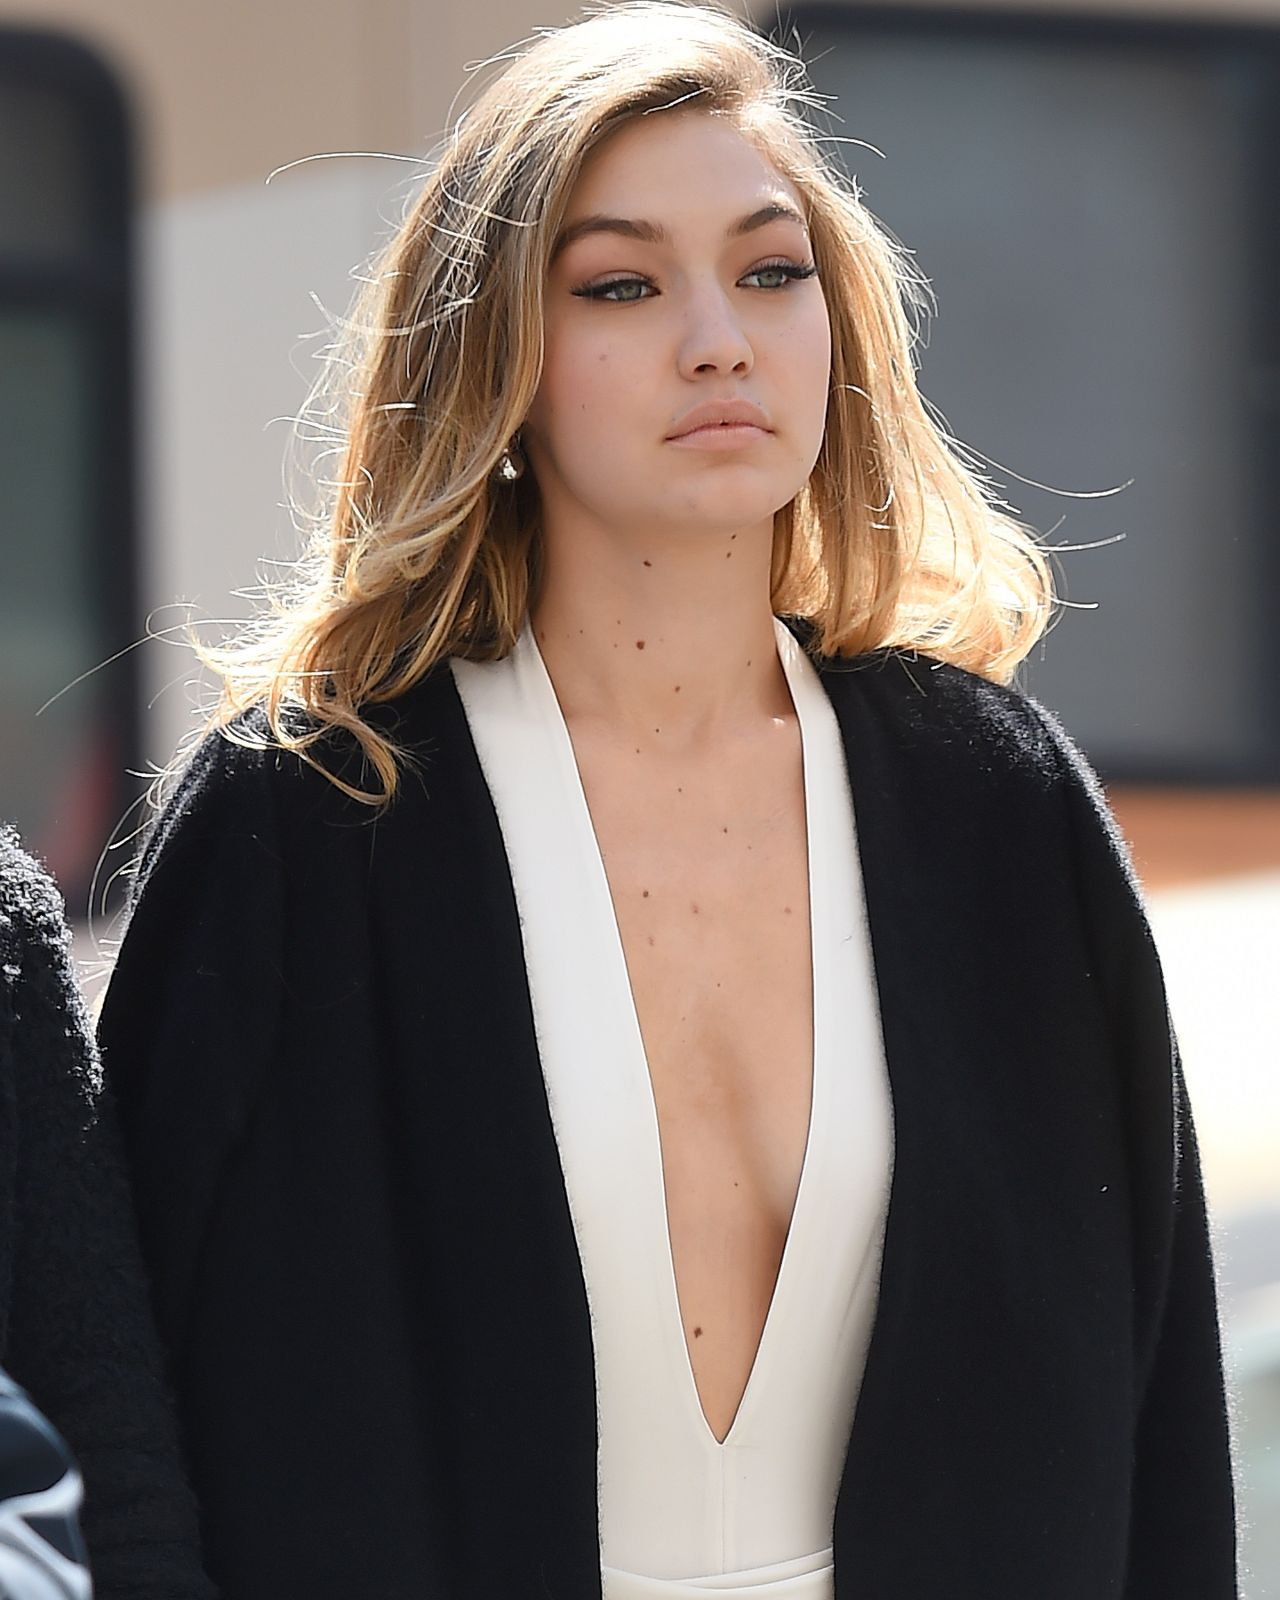 gigi-hadid-hot-in-bikini